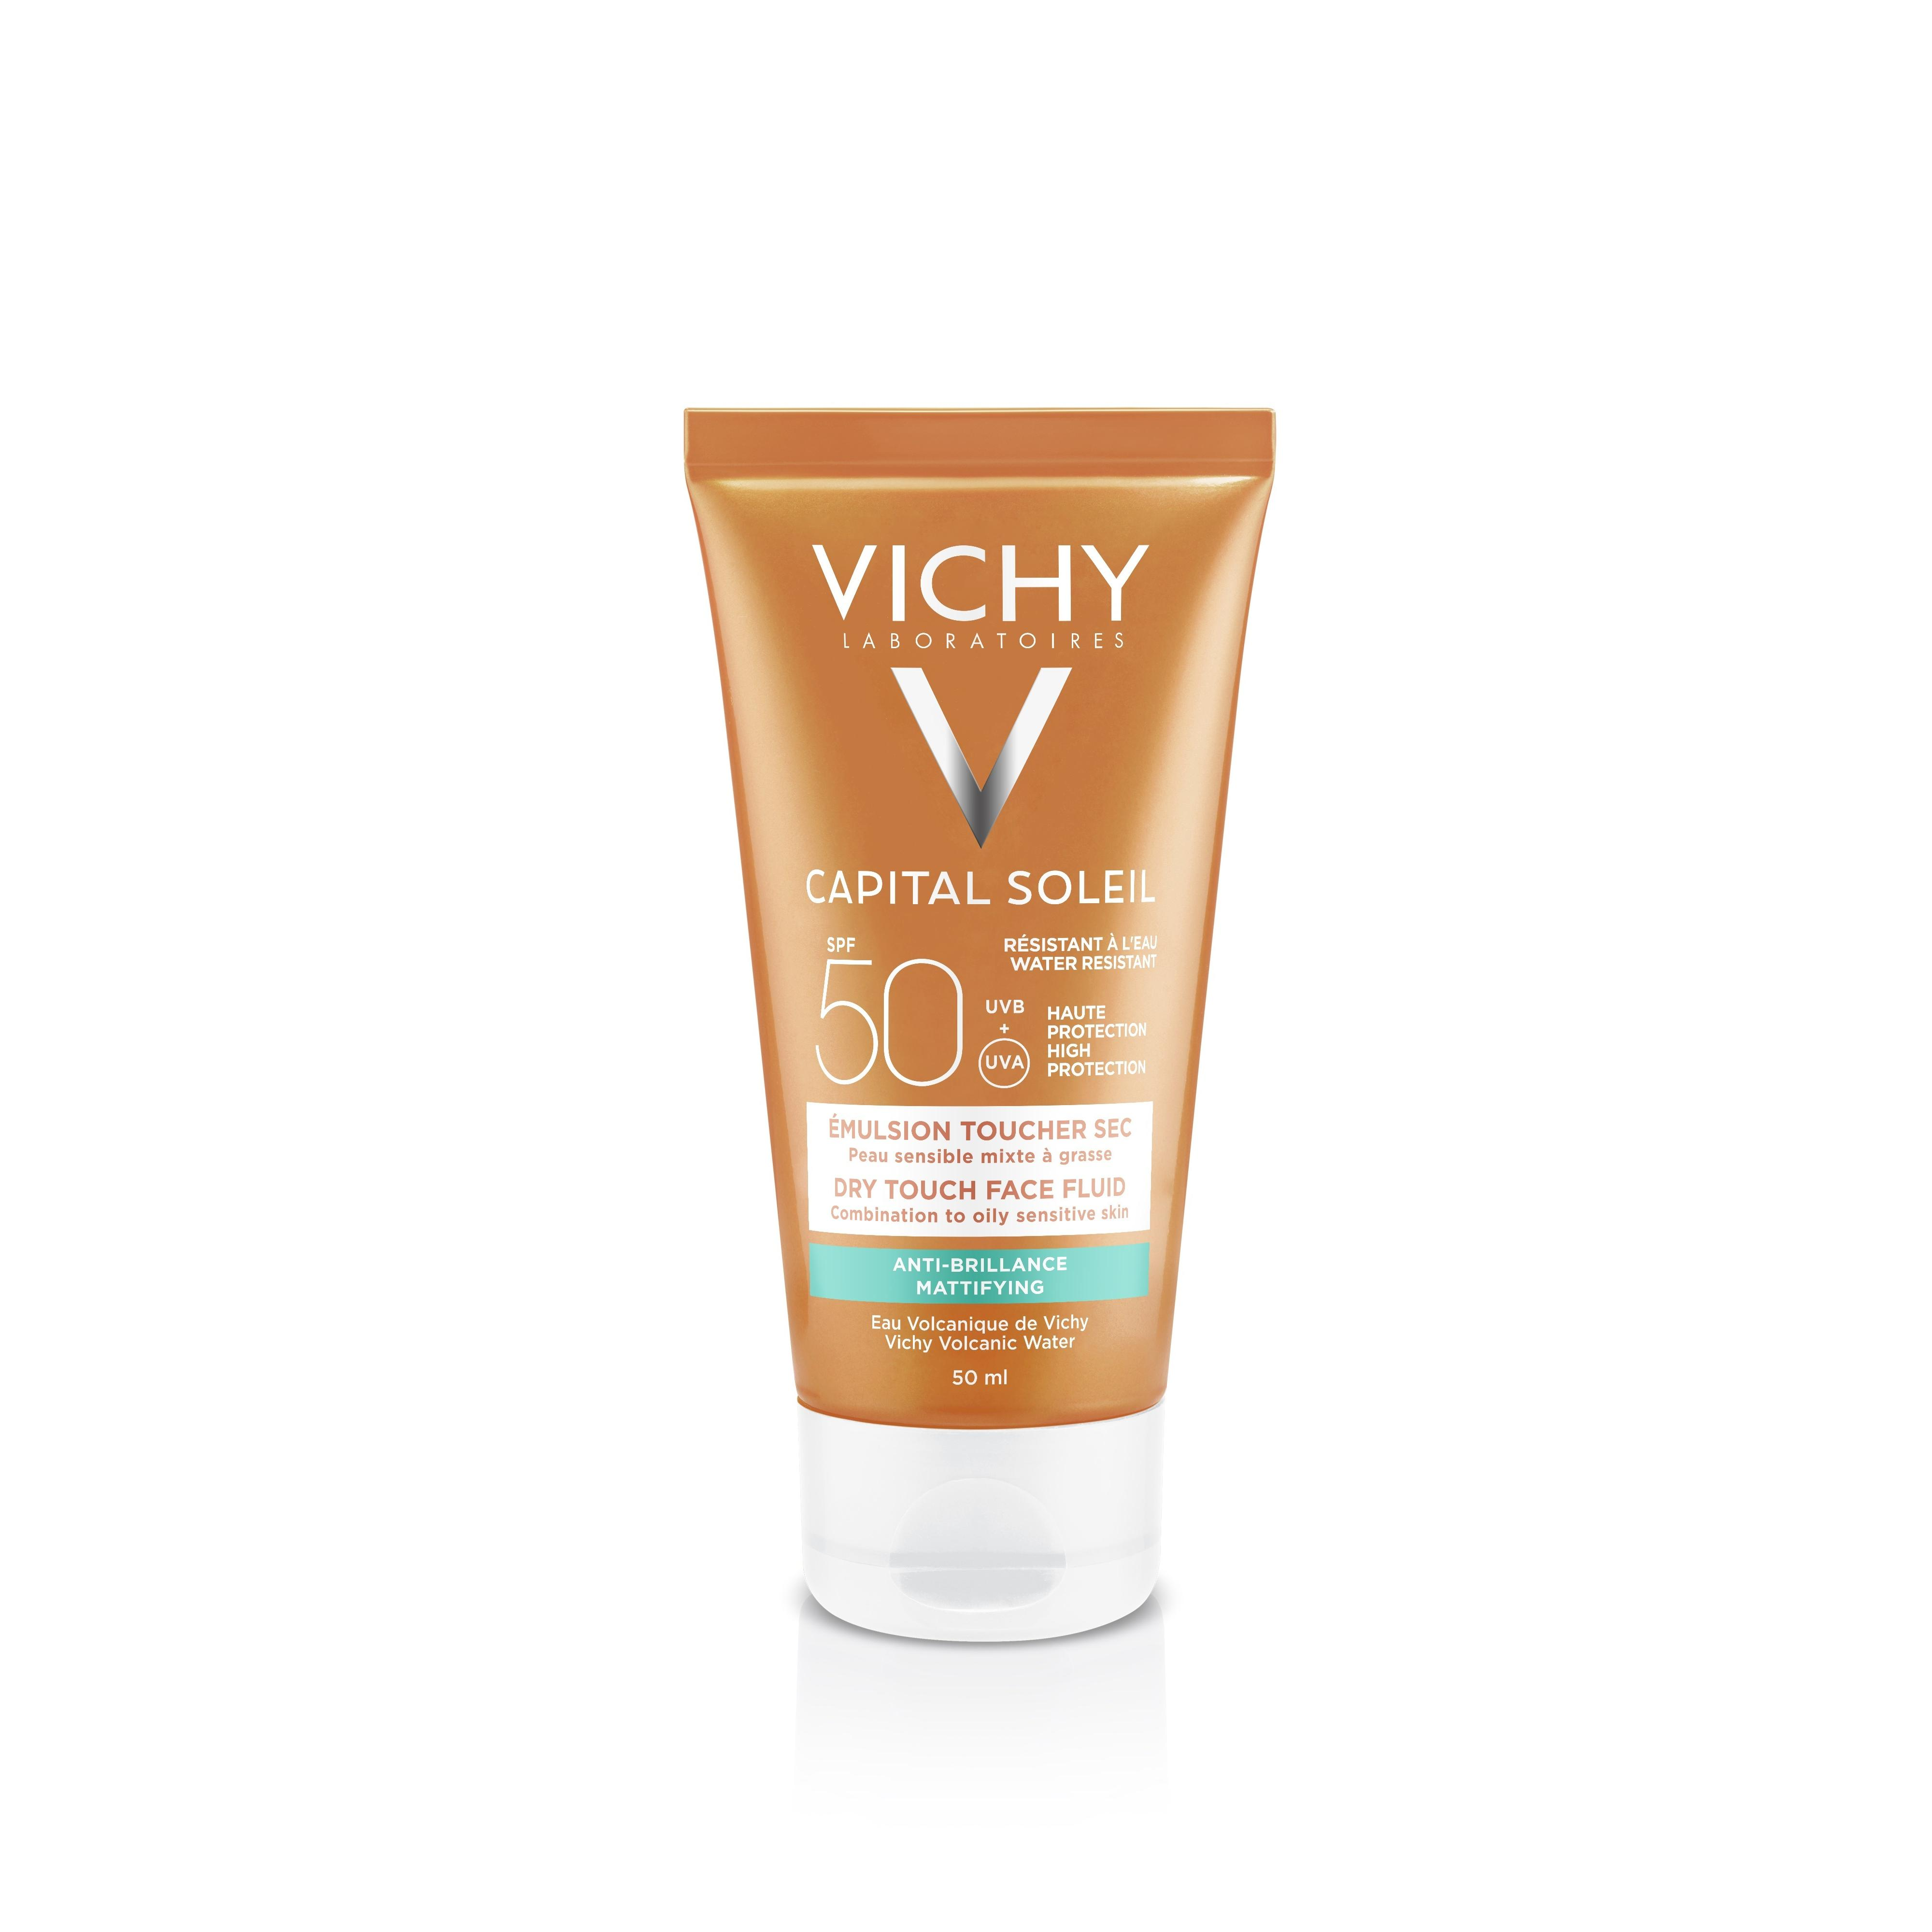 Image of Vichy Capital Soleil Dry touch SPF50+